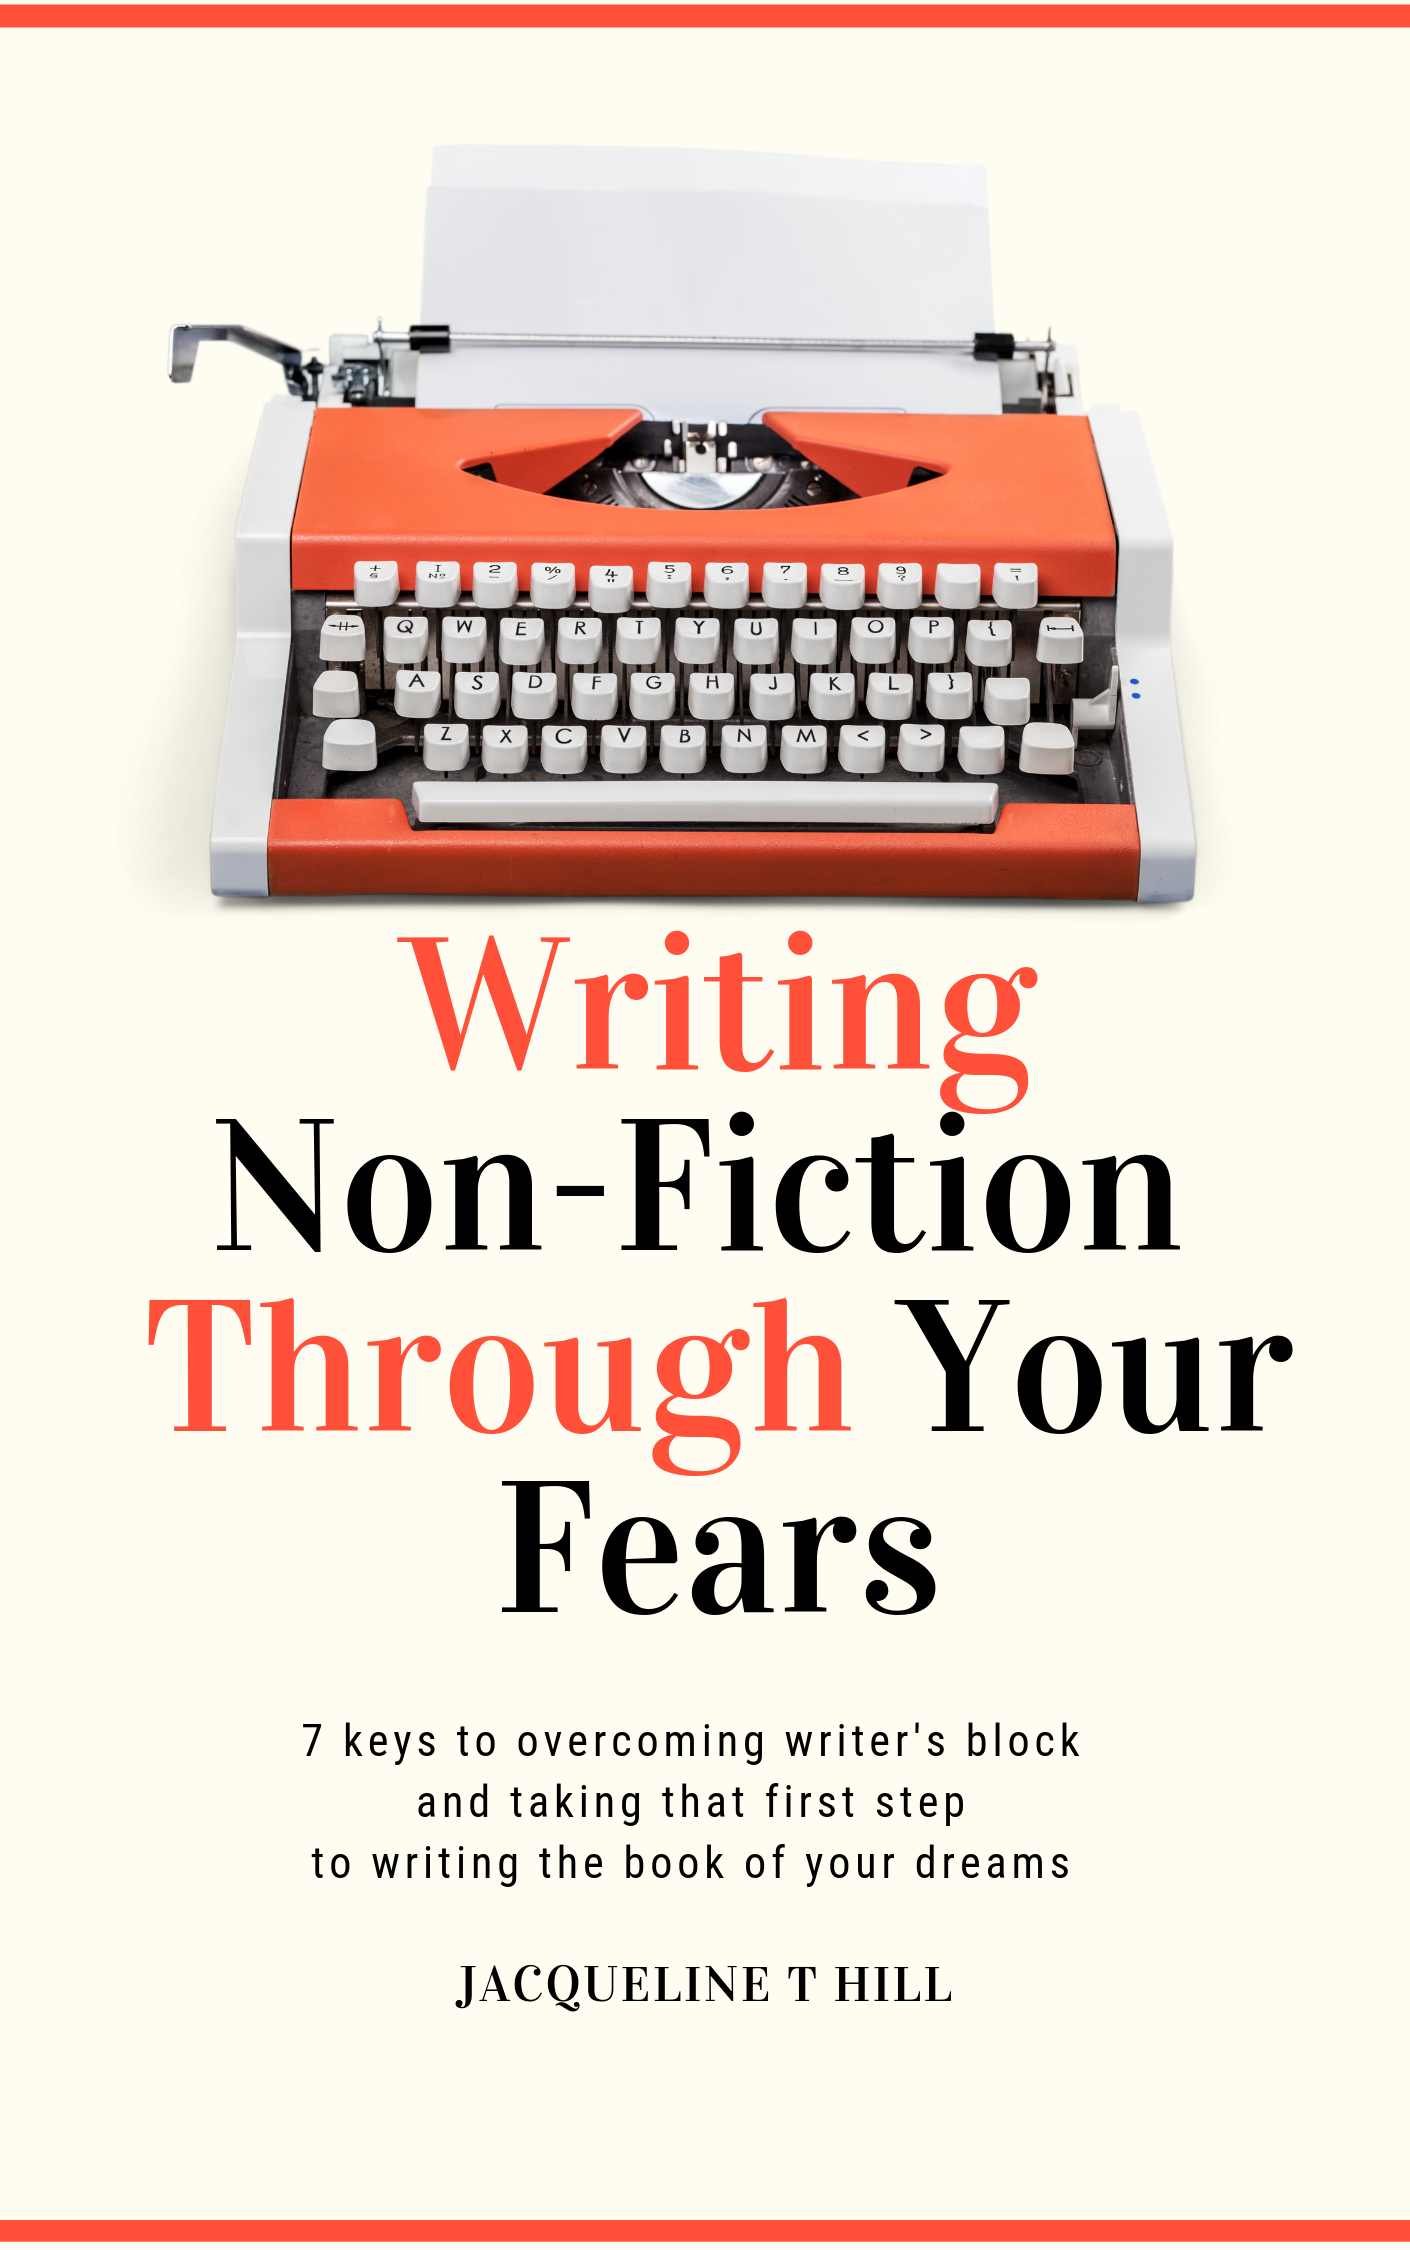 Writing Non-Fiction Through Your Fears: 7 keys to overcoming writer's block and taking that first step to writing the book of your dreams